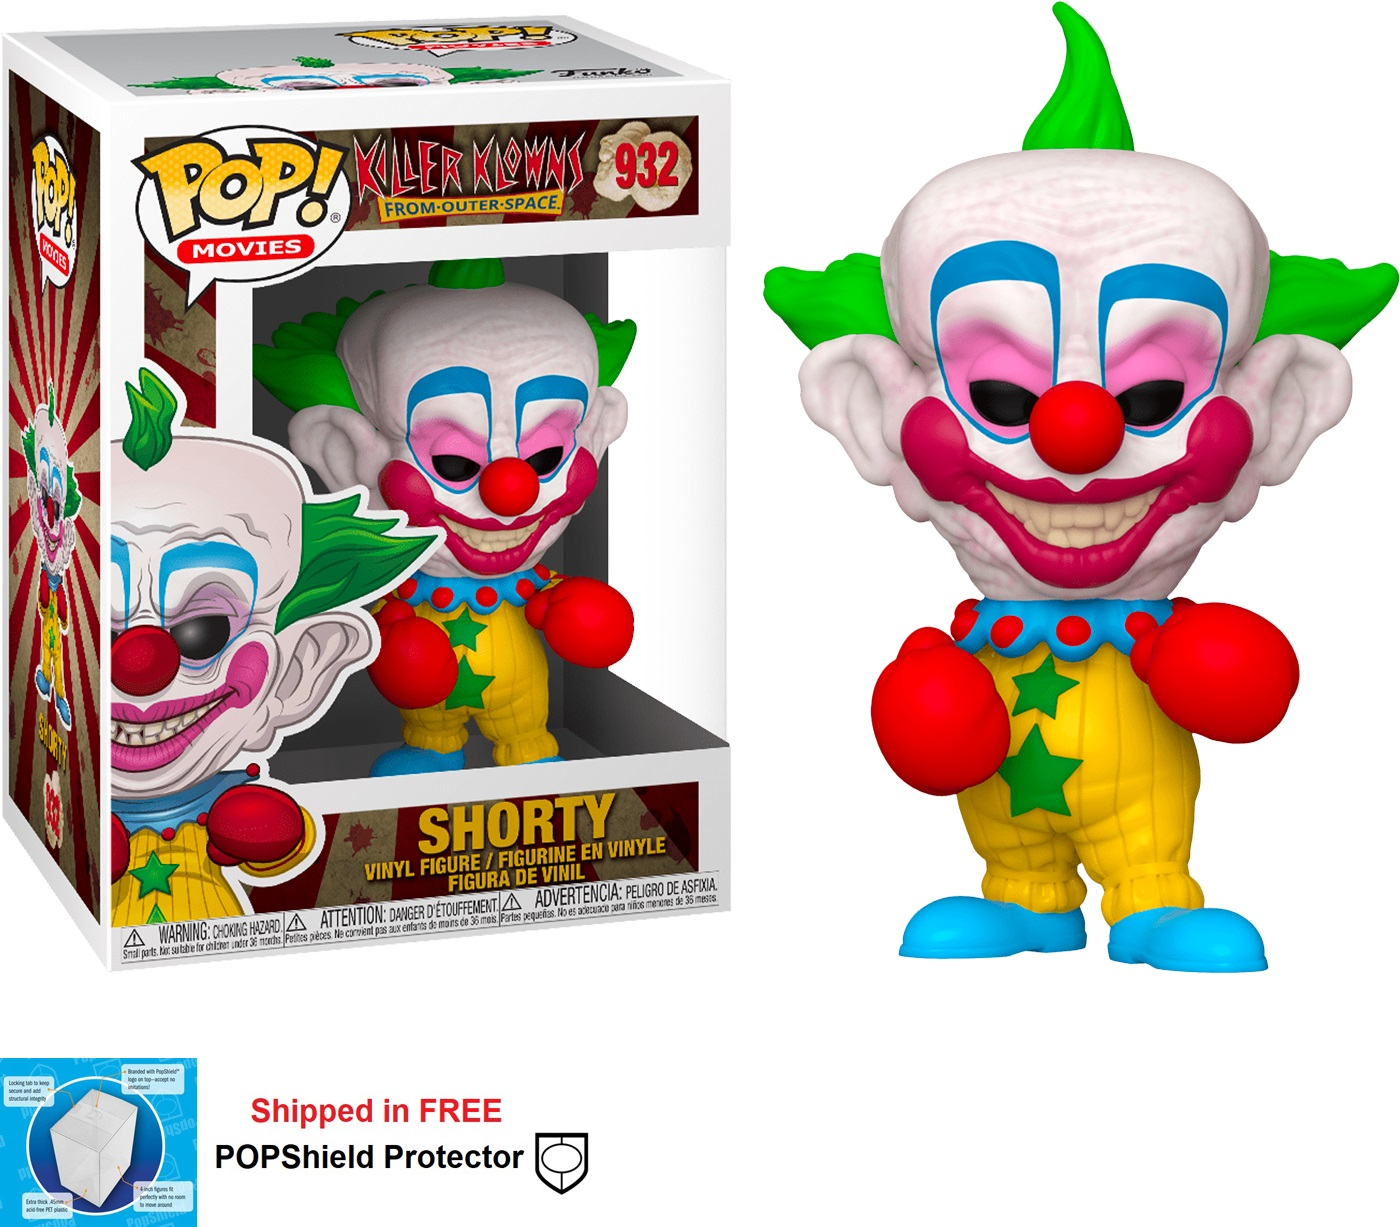 Funko POP Movies Killer Klowns From Outer Space Shorty - #932